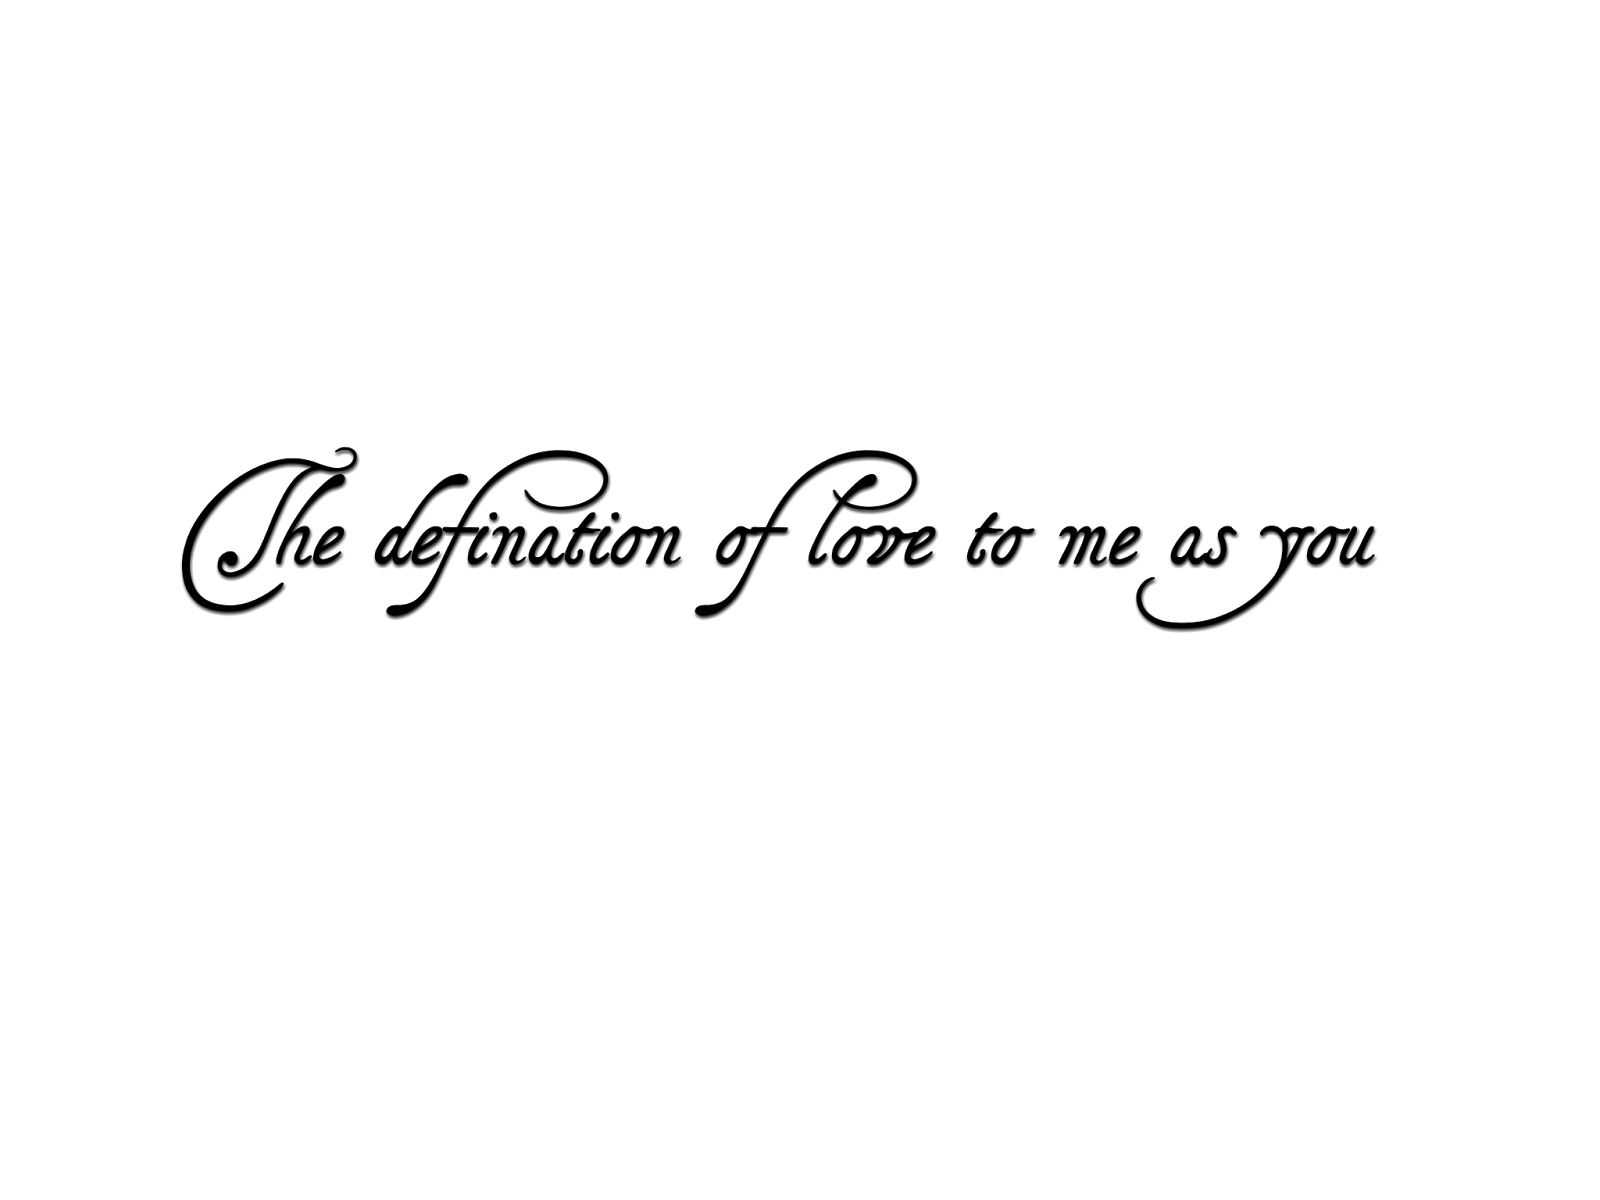 Couple royal editing world. Png text new png transparent stock